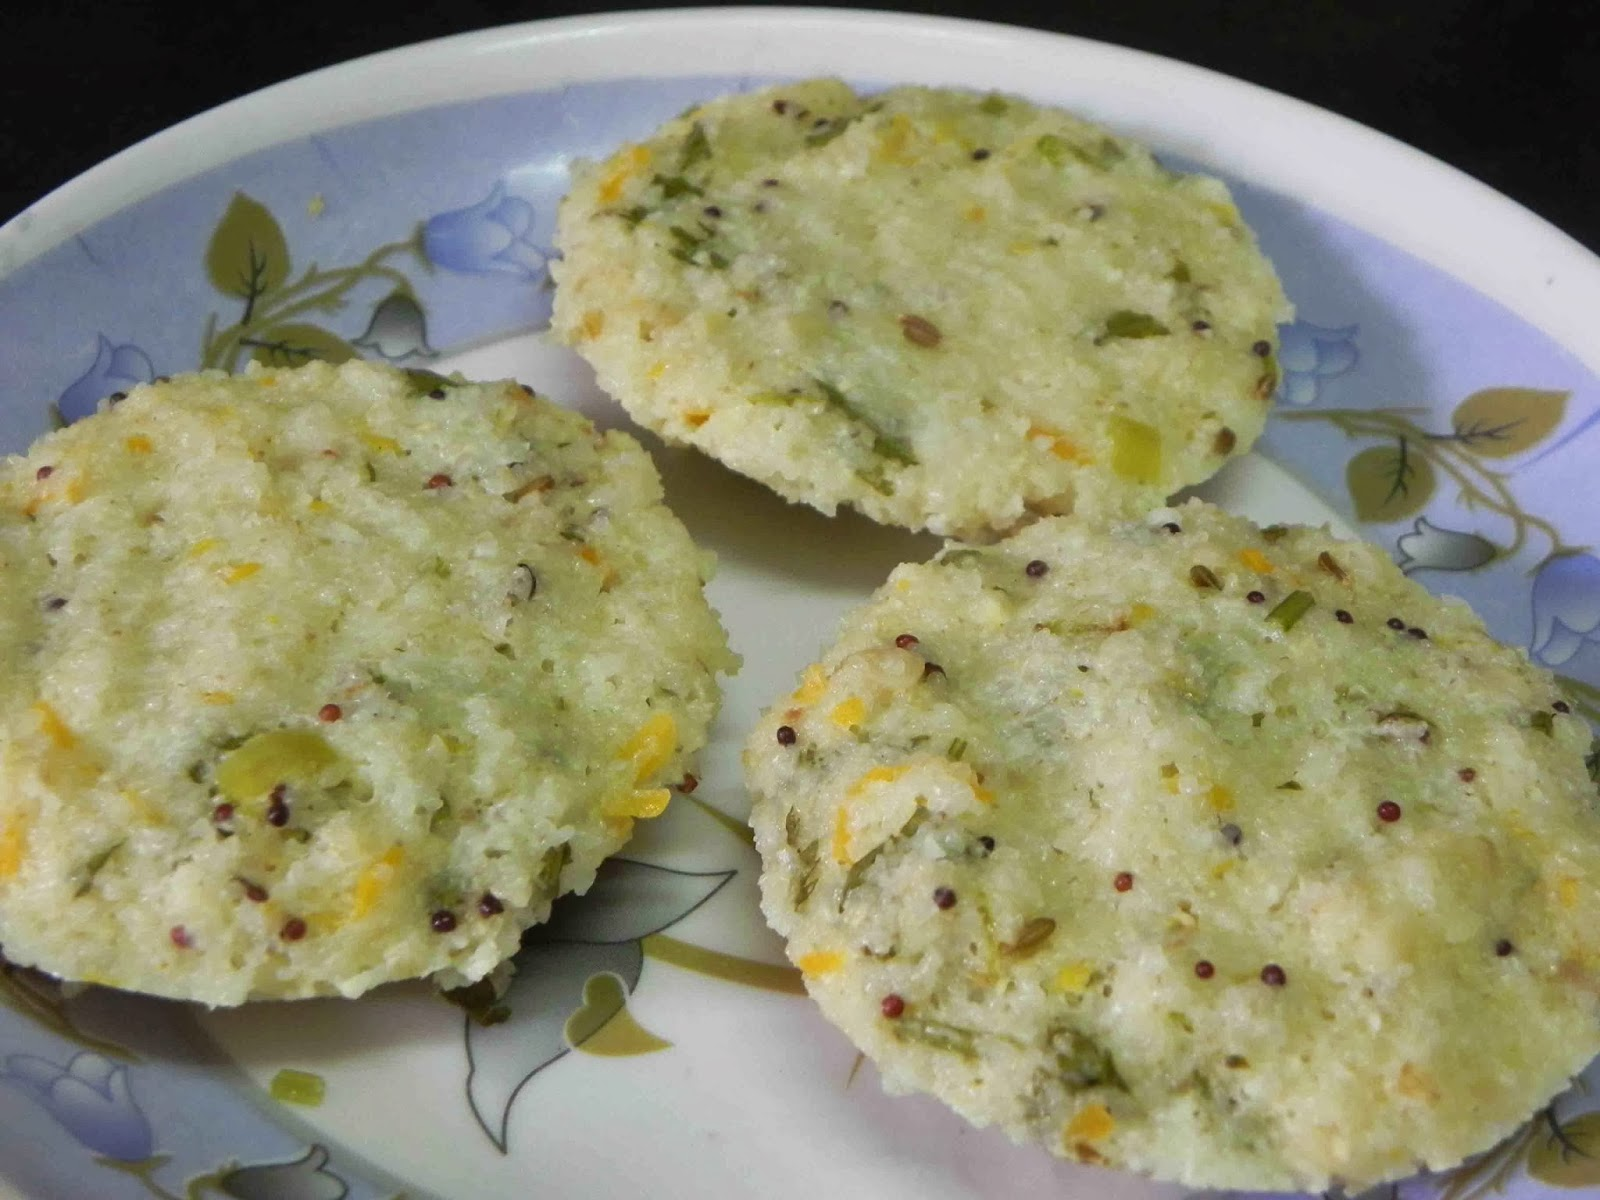 Quick and easy breakfast recipe instant rava idli delicious rava idli is one of the famous south indian breakfast dish which takes very less time to prepare compared to regular idli here goes the recipe of soft and forumfinder Images